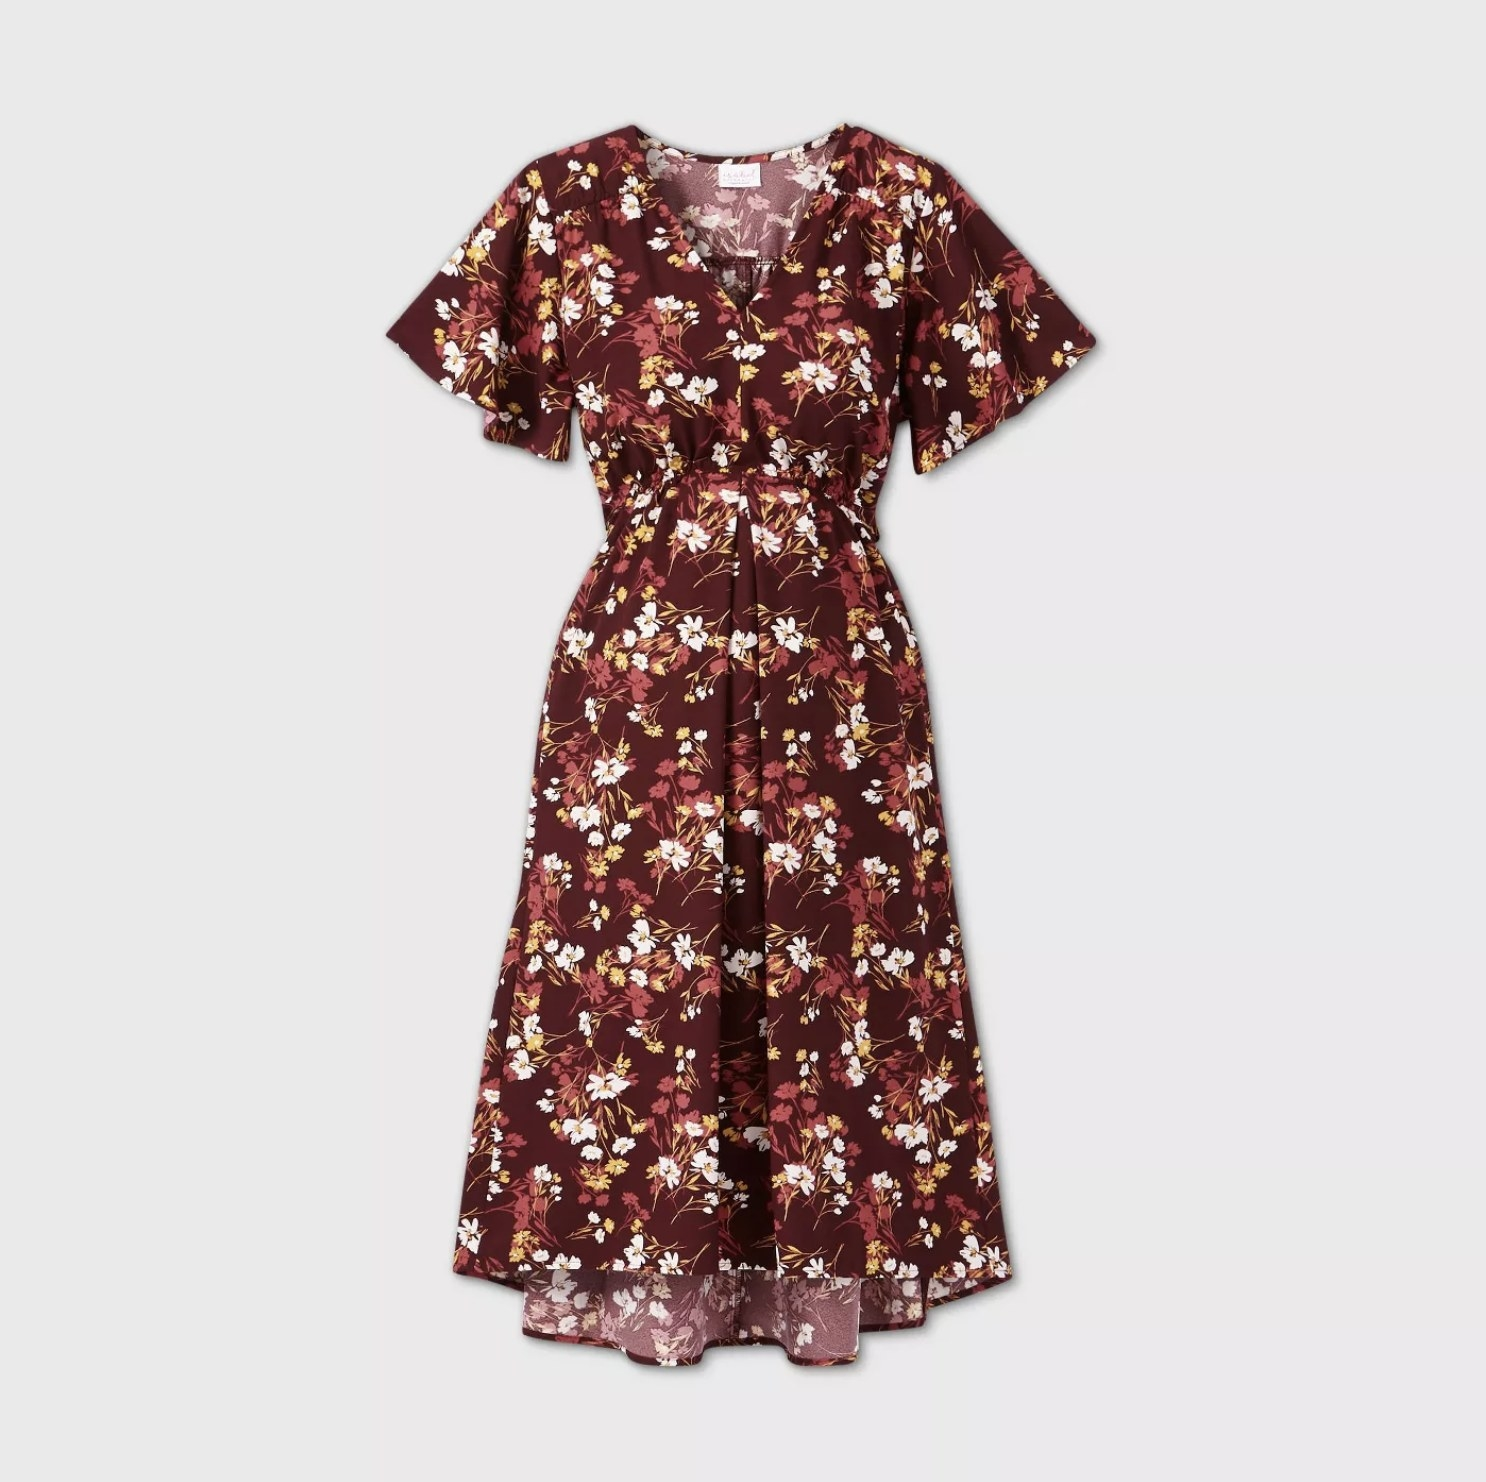 A maroon short flutter sleeve floral dress with white, cream, and red flowers throughout